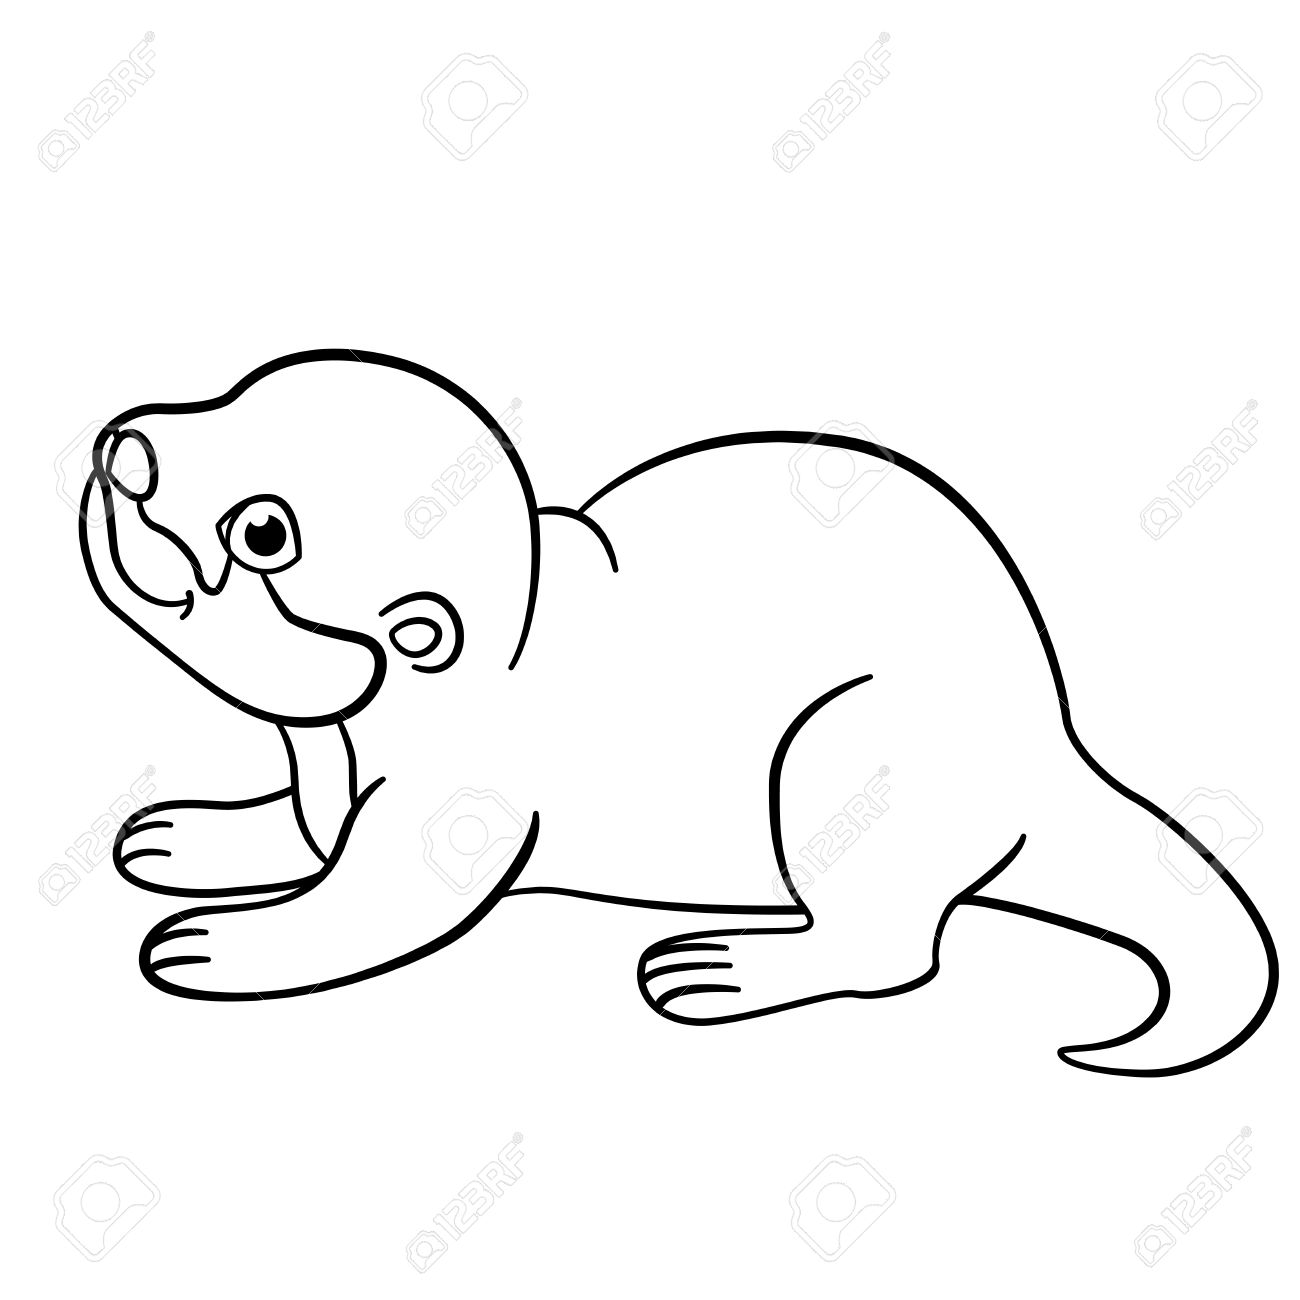 Coloring pages baby otters - Coloring Pages Little Cute Baby Otter Stands And Smiles Stock Vector 62915909